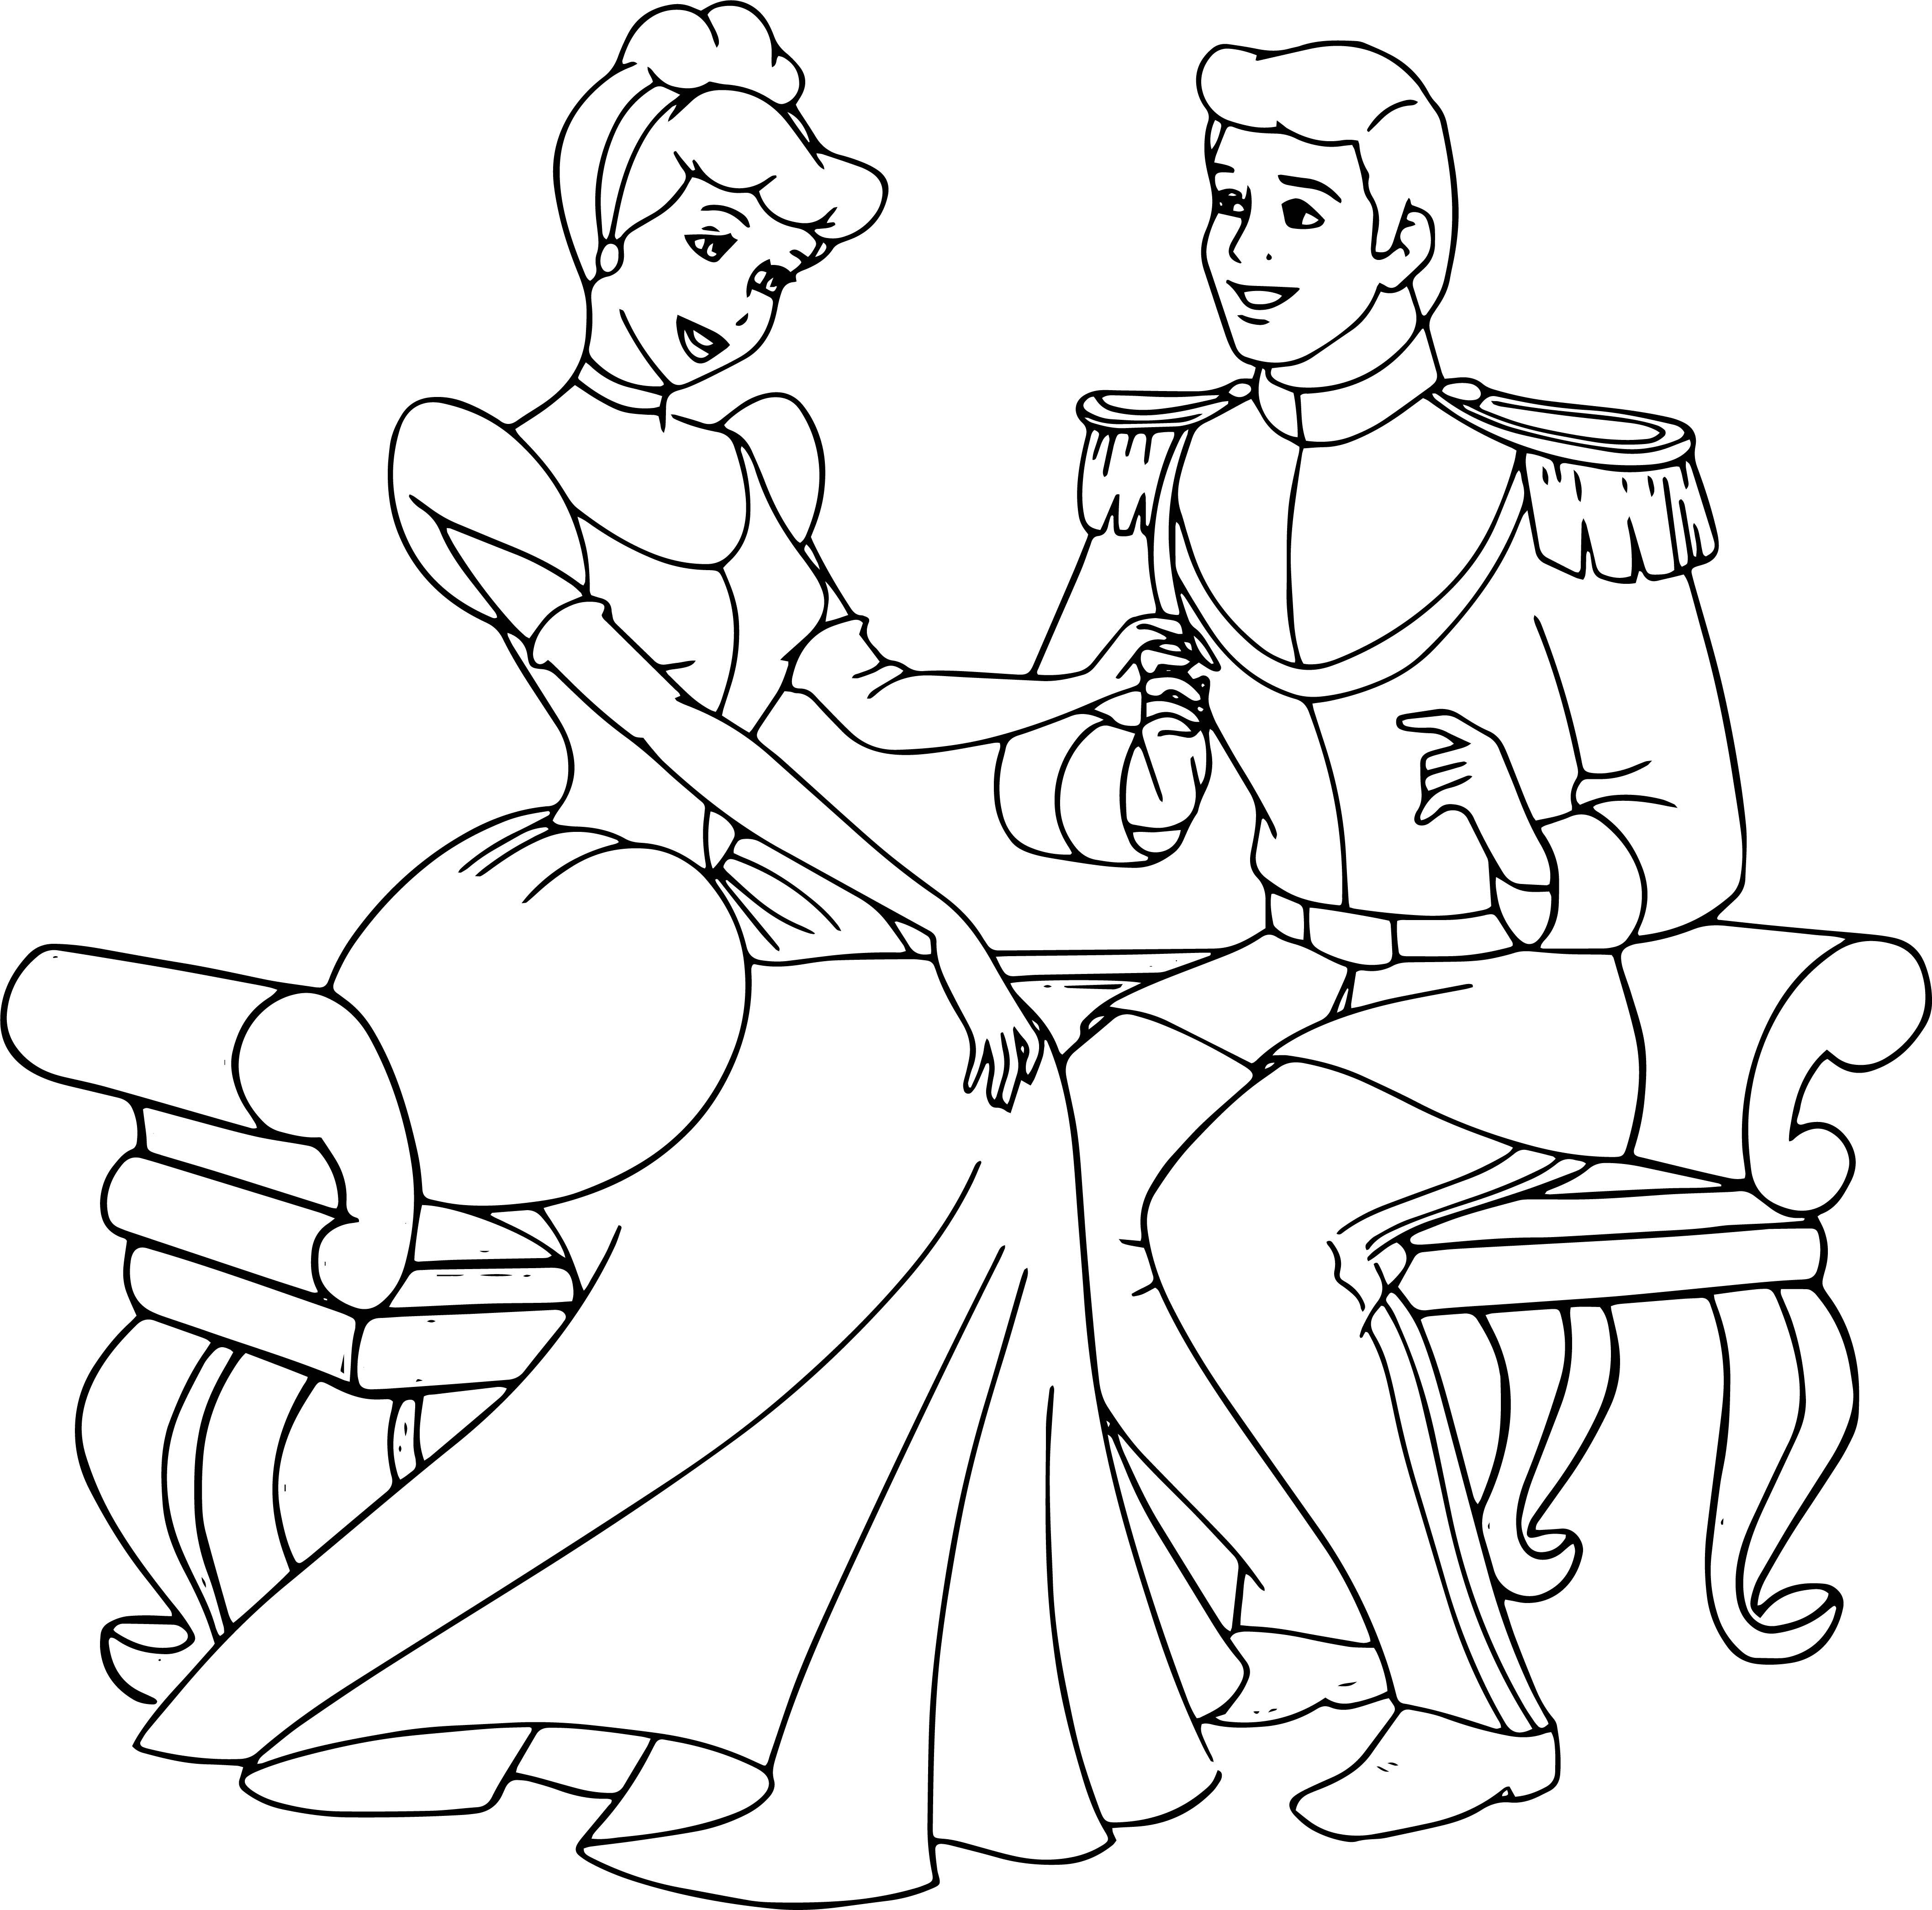 Cinderella And Prince Charming Staying Talking Coloring Pages